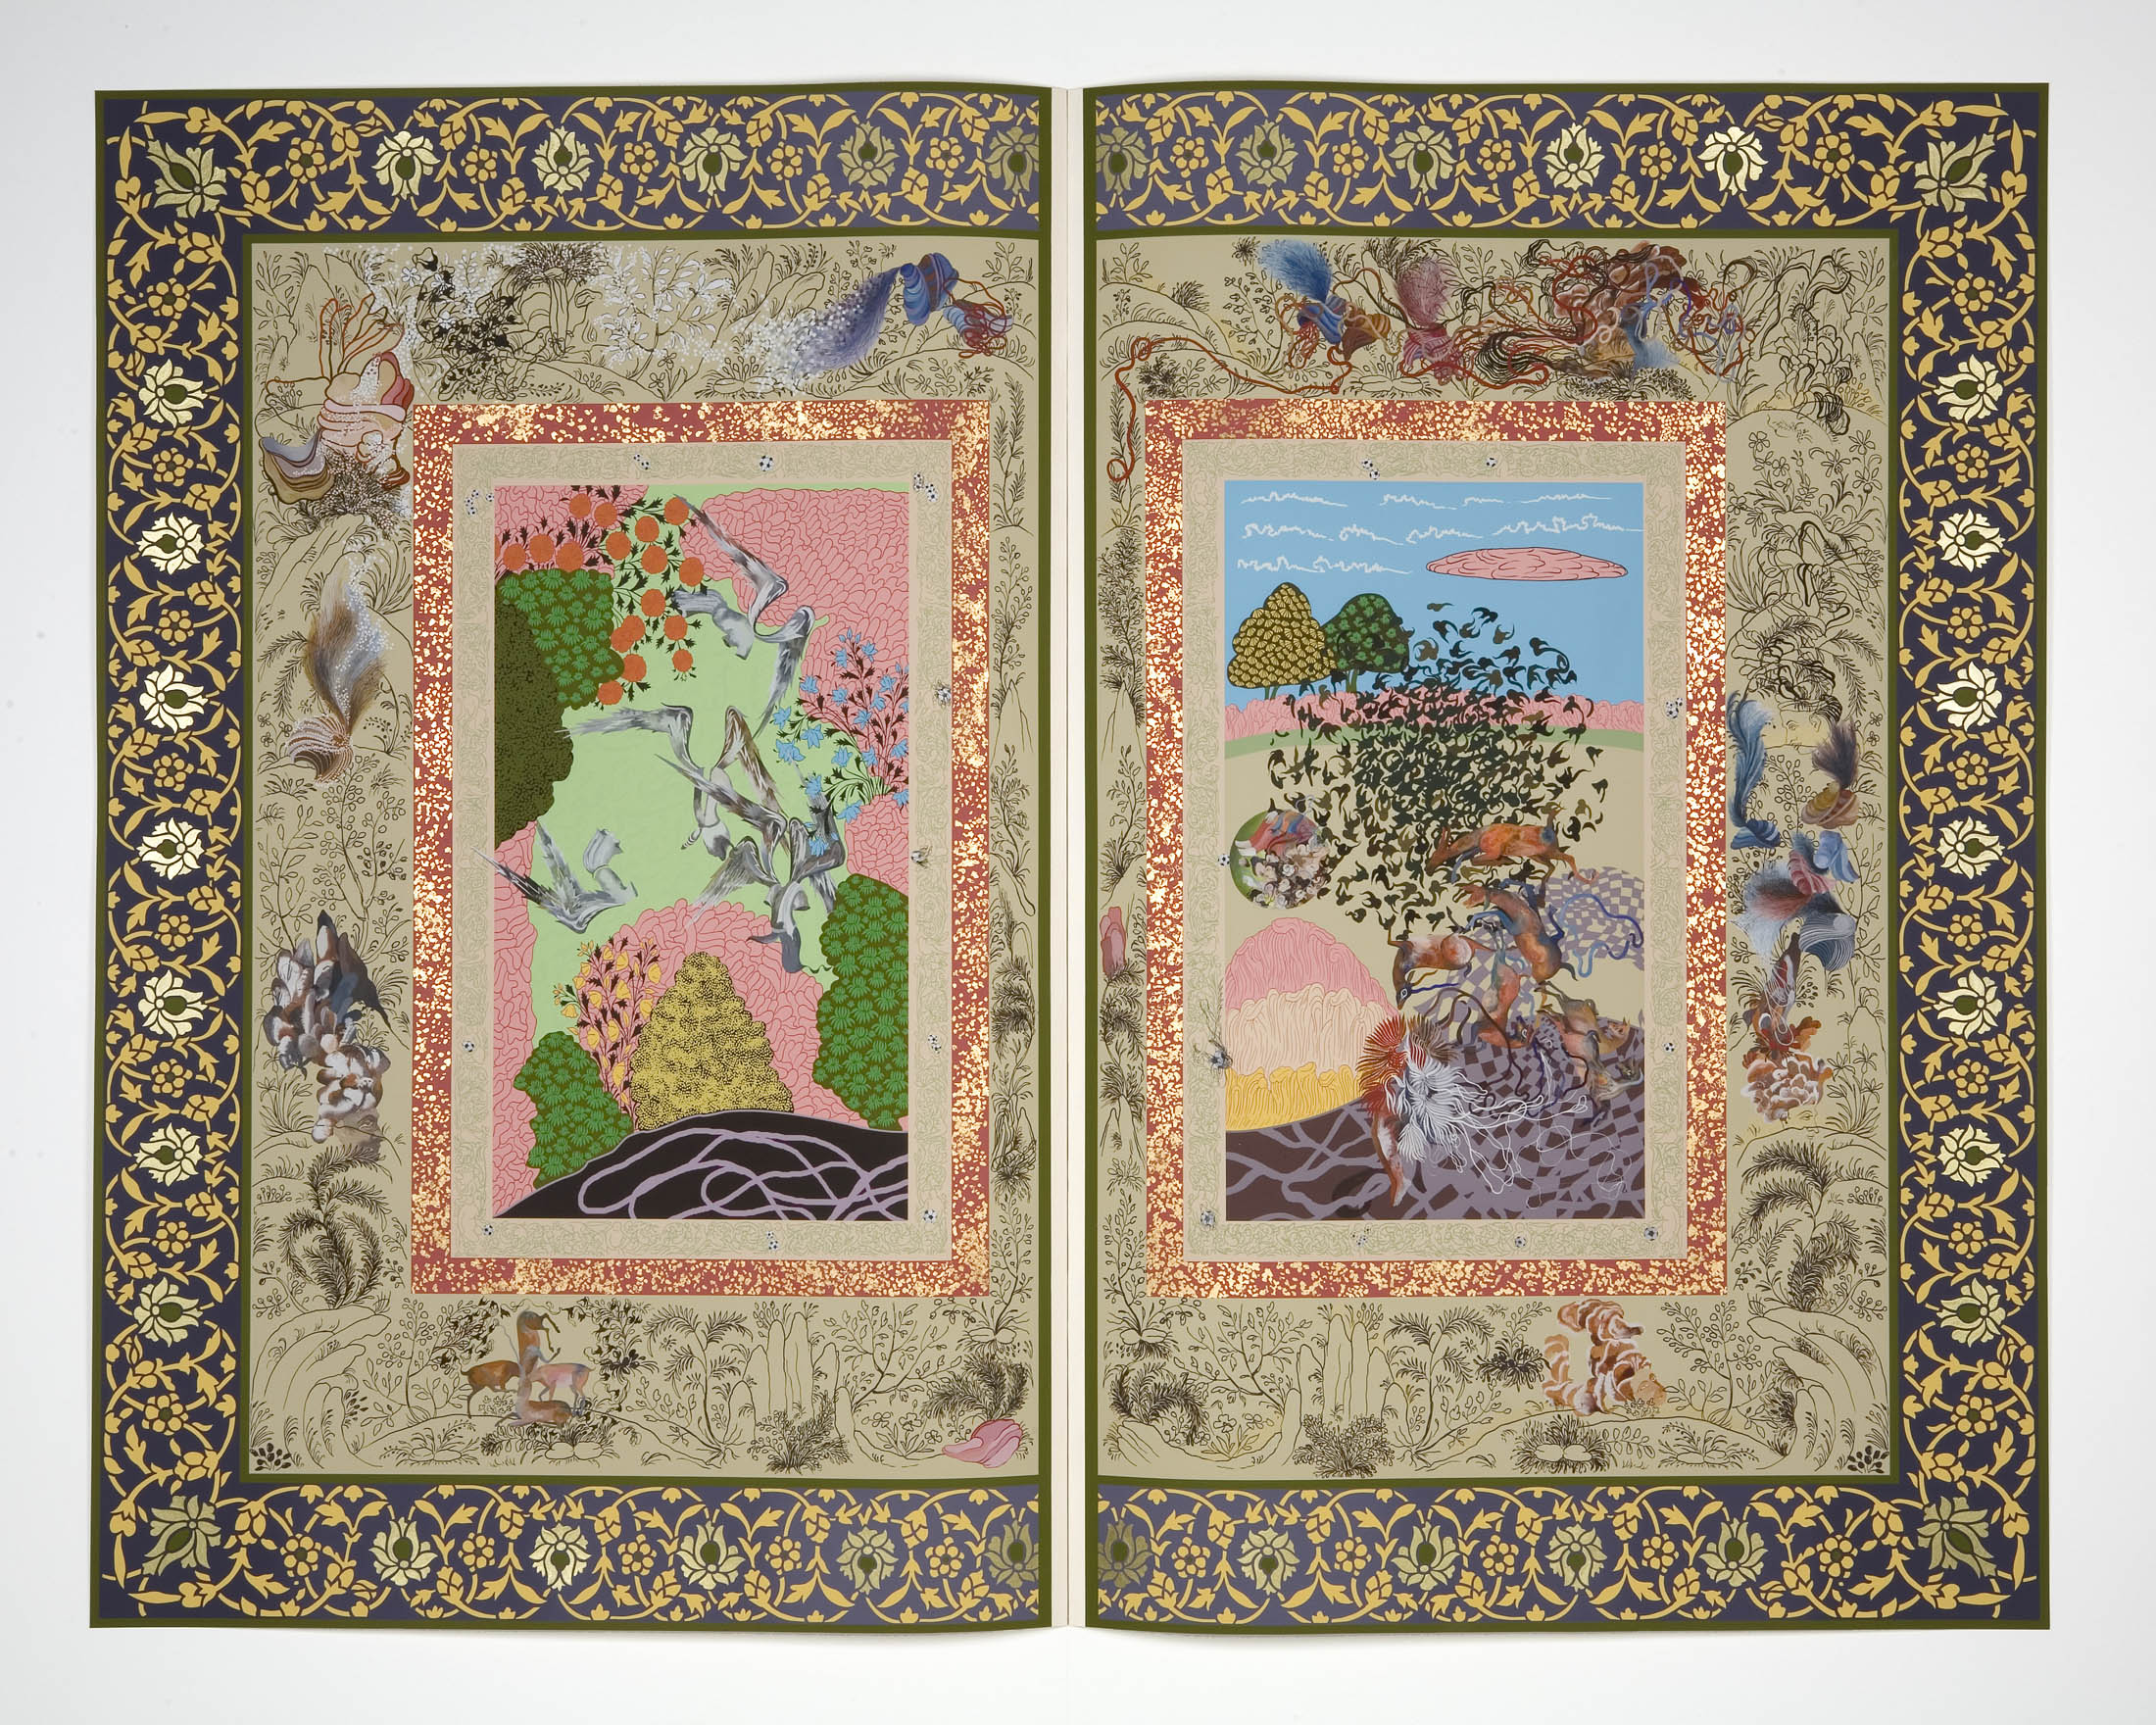 Shahzia Sikander, The Illustrated Page II (2005–2007).